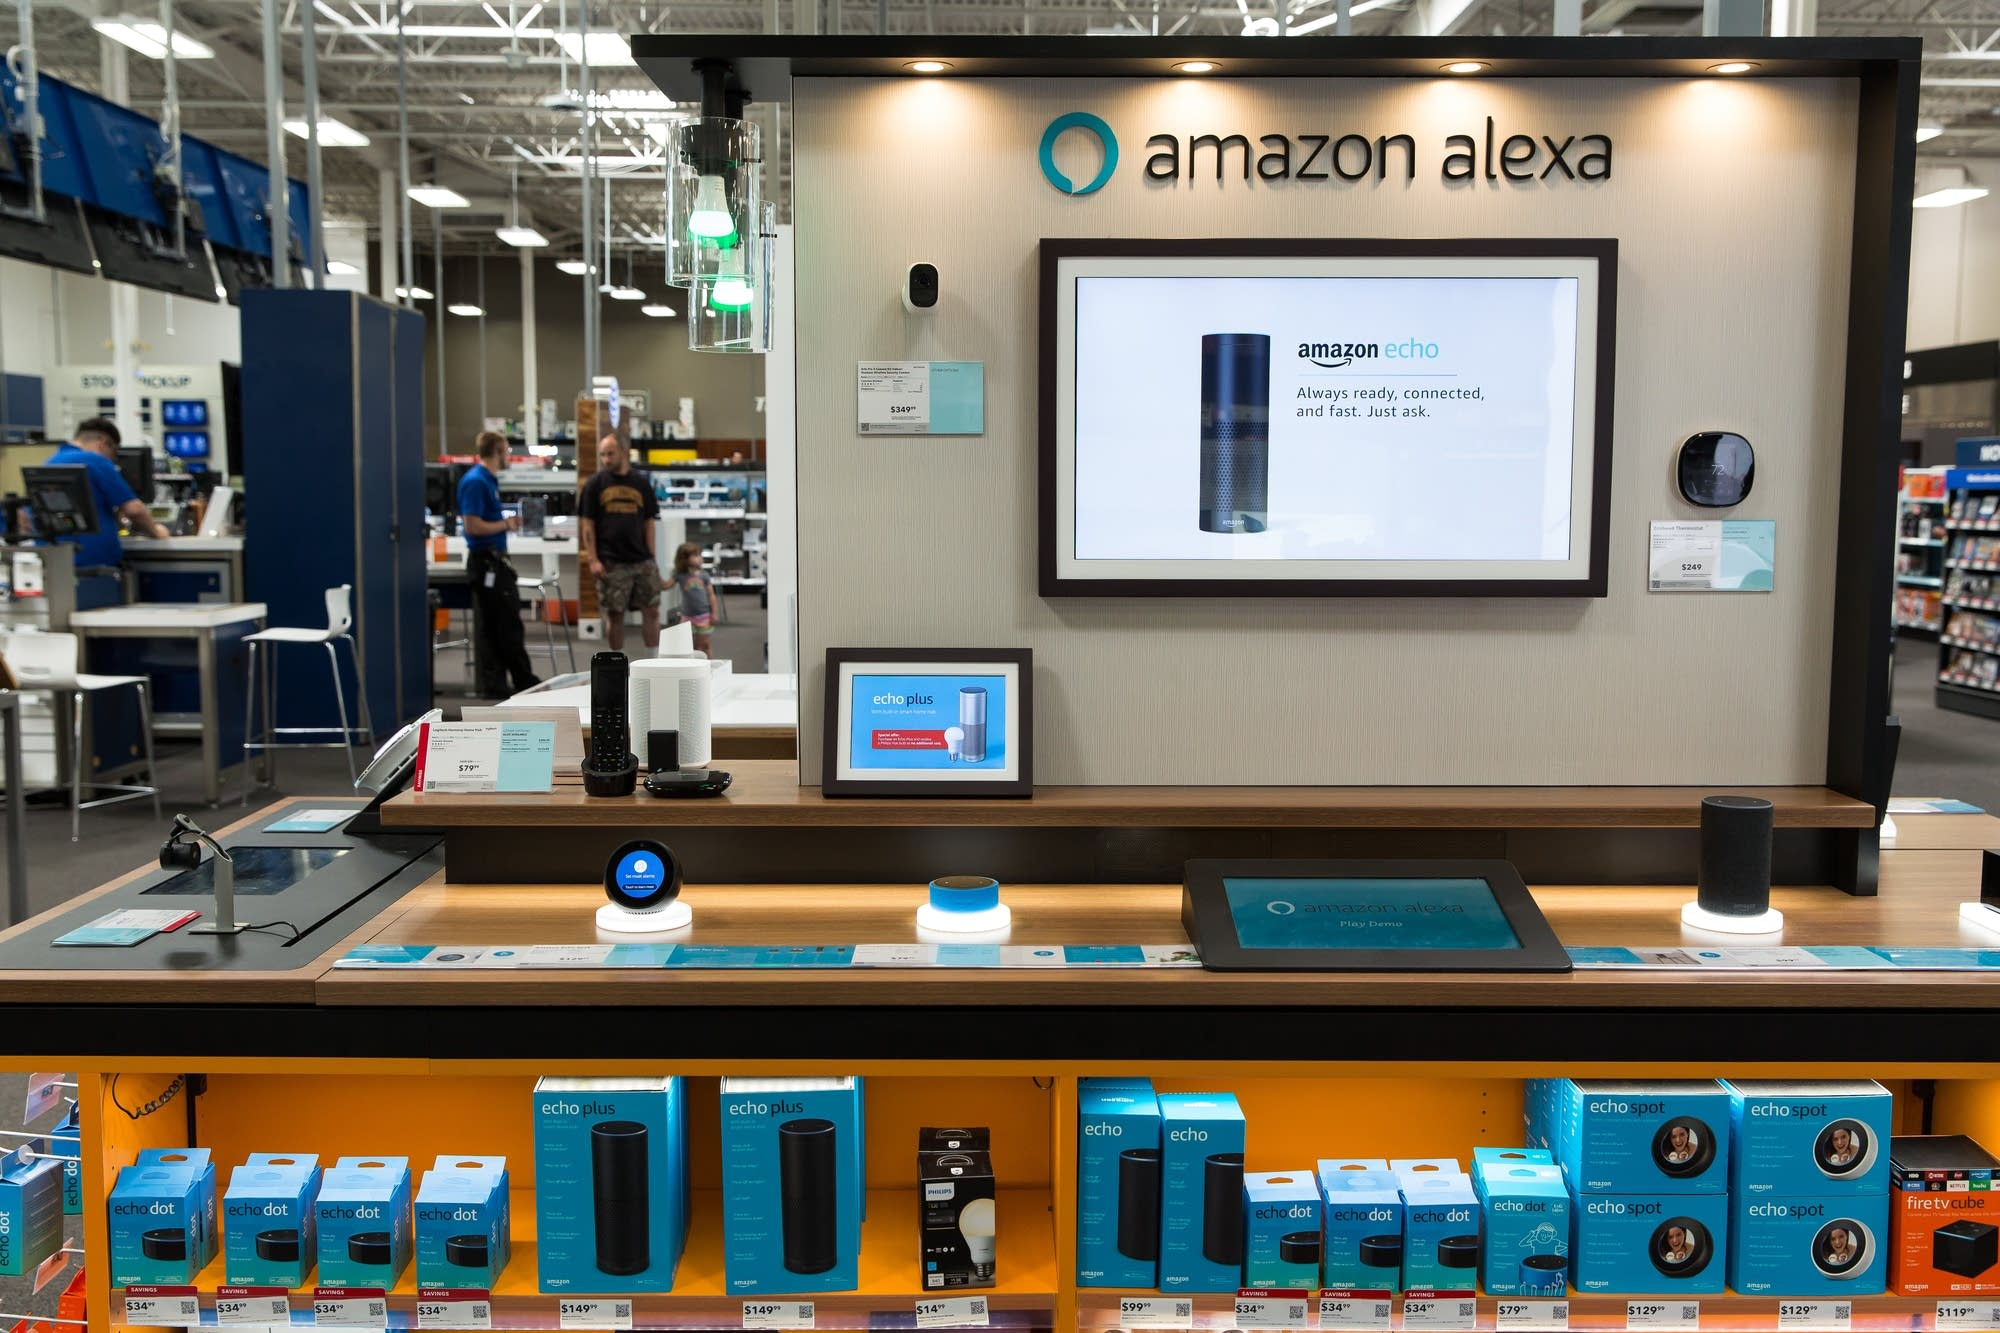 Best Buy's flagship store houses a kiosk full of Amazon products.